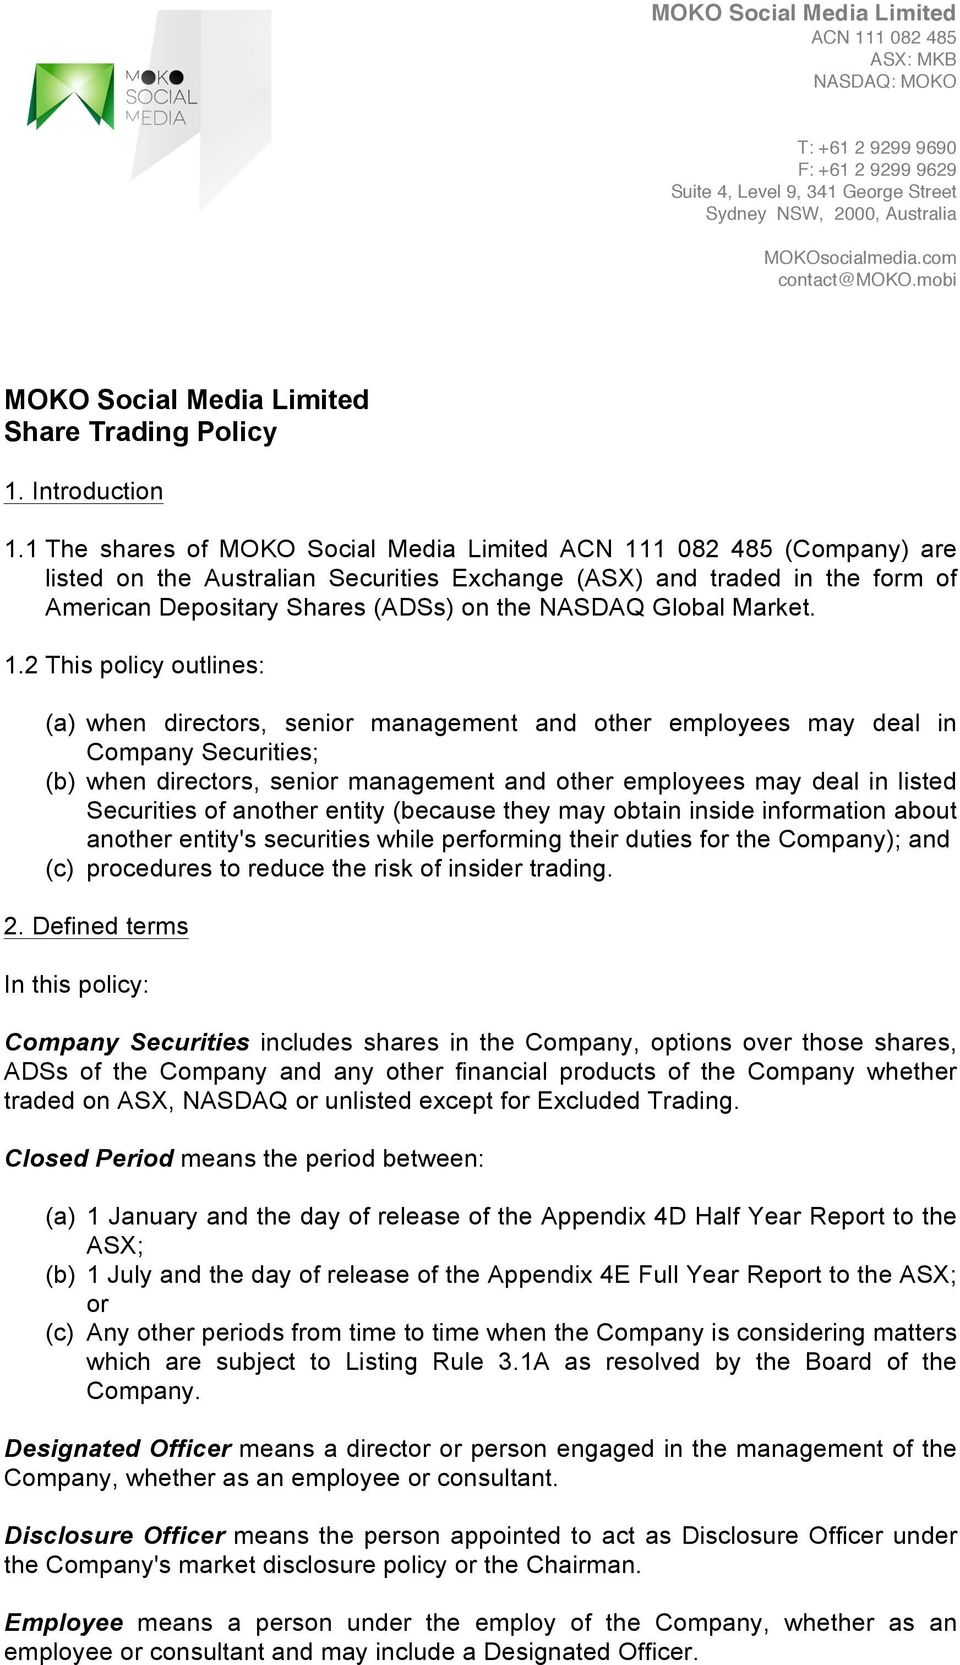 1 The shares of MOKO Social Media Limited ACN 111 082 485 (Company) are listed on the Australian Securities Exchange (ASX) and traded in the form of American Depositary Shares (ADSs) on the NASDAQ